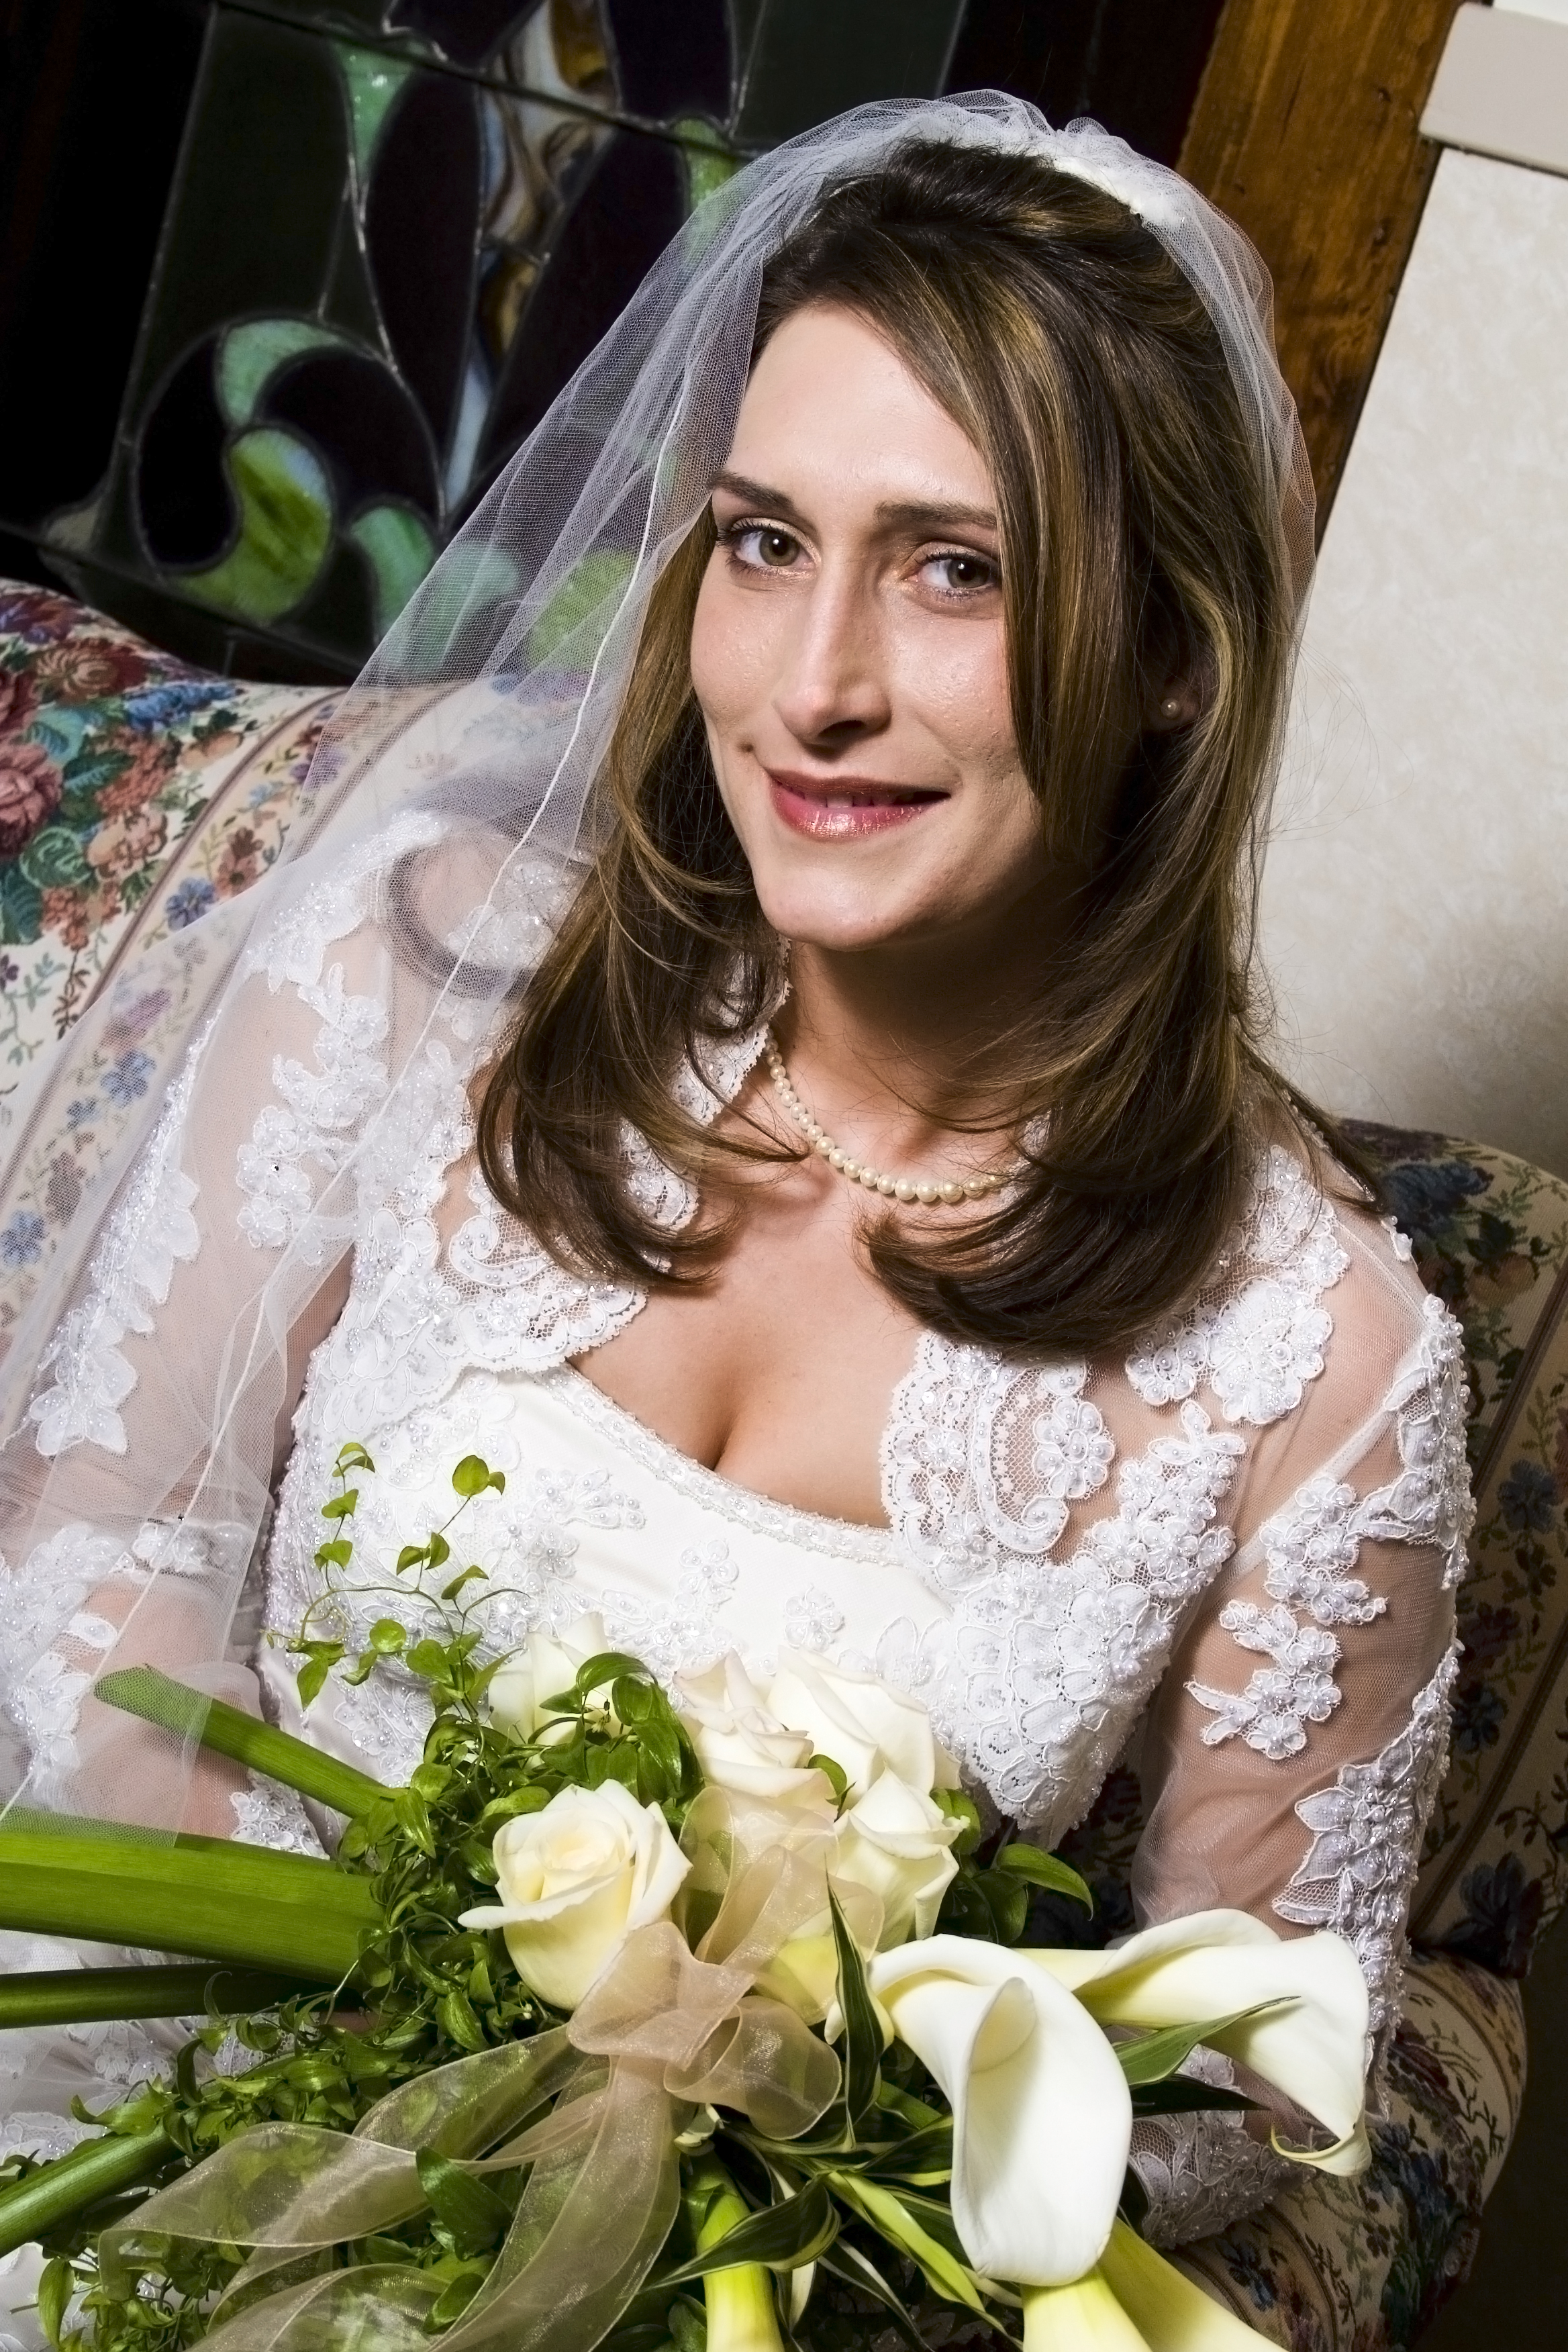 Photography, Bride, Bouquet, Wedding, Center, Productions, Street, Center street productions